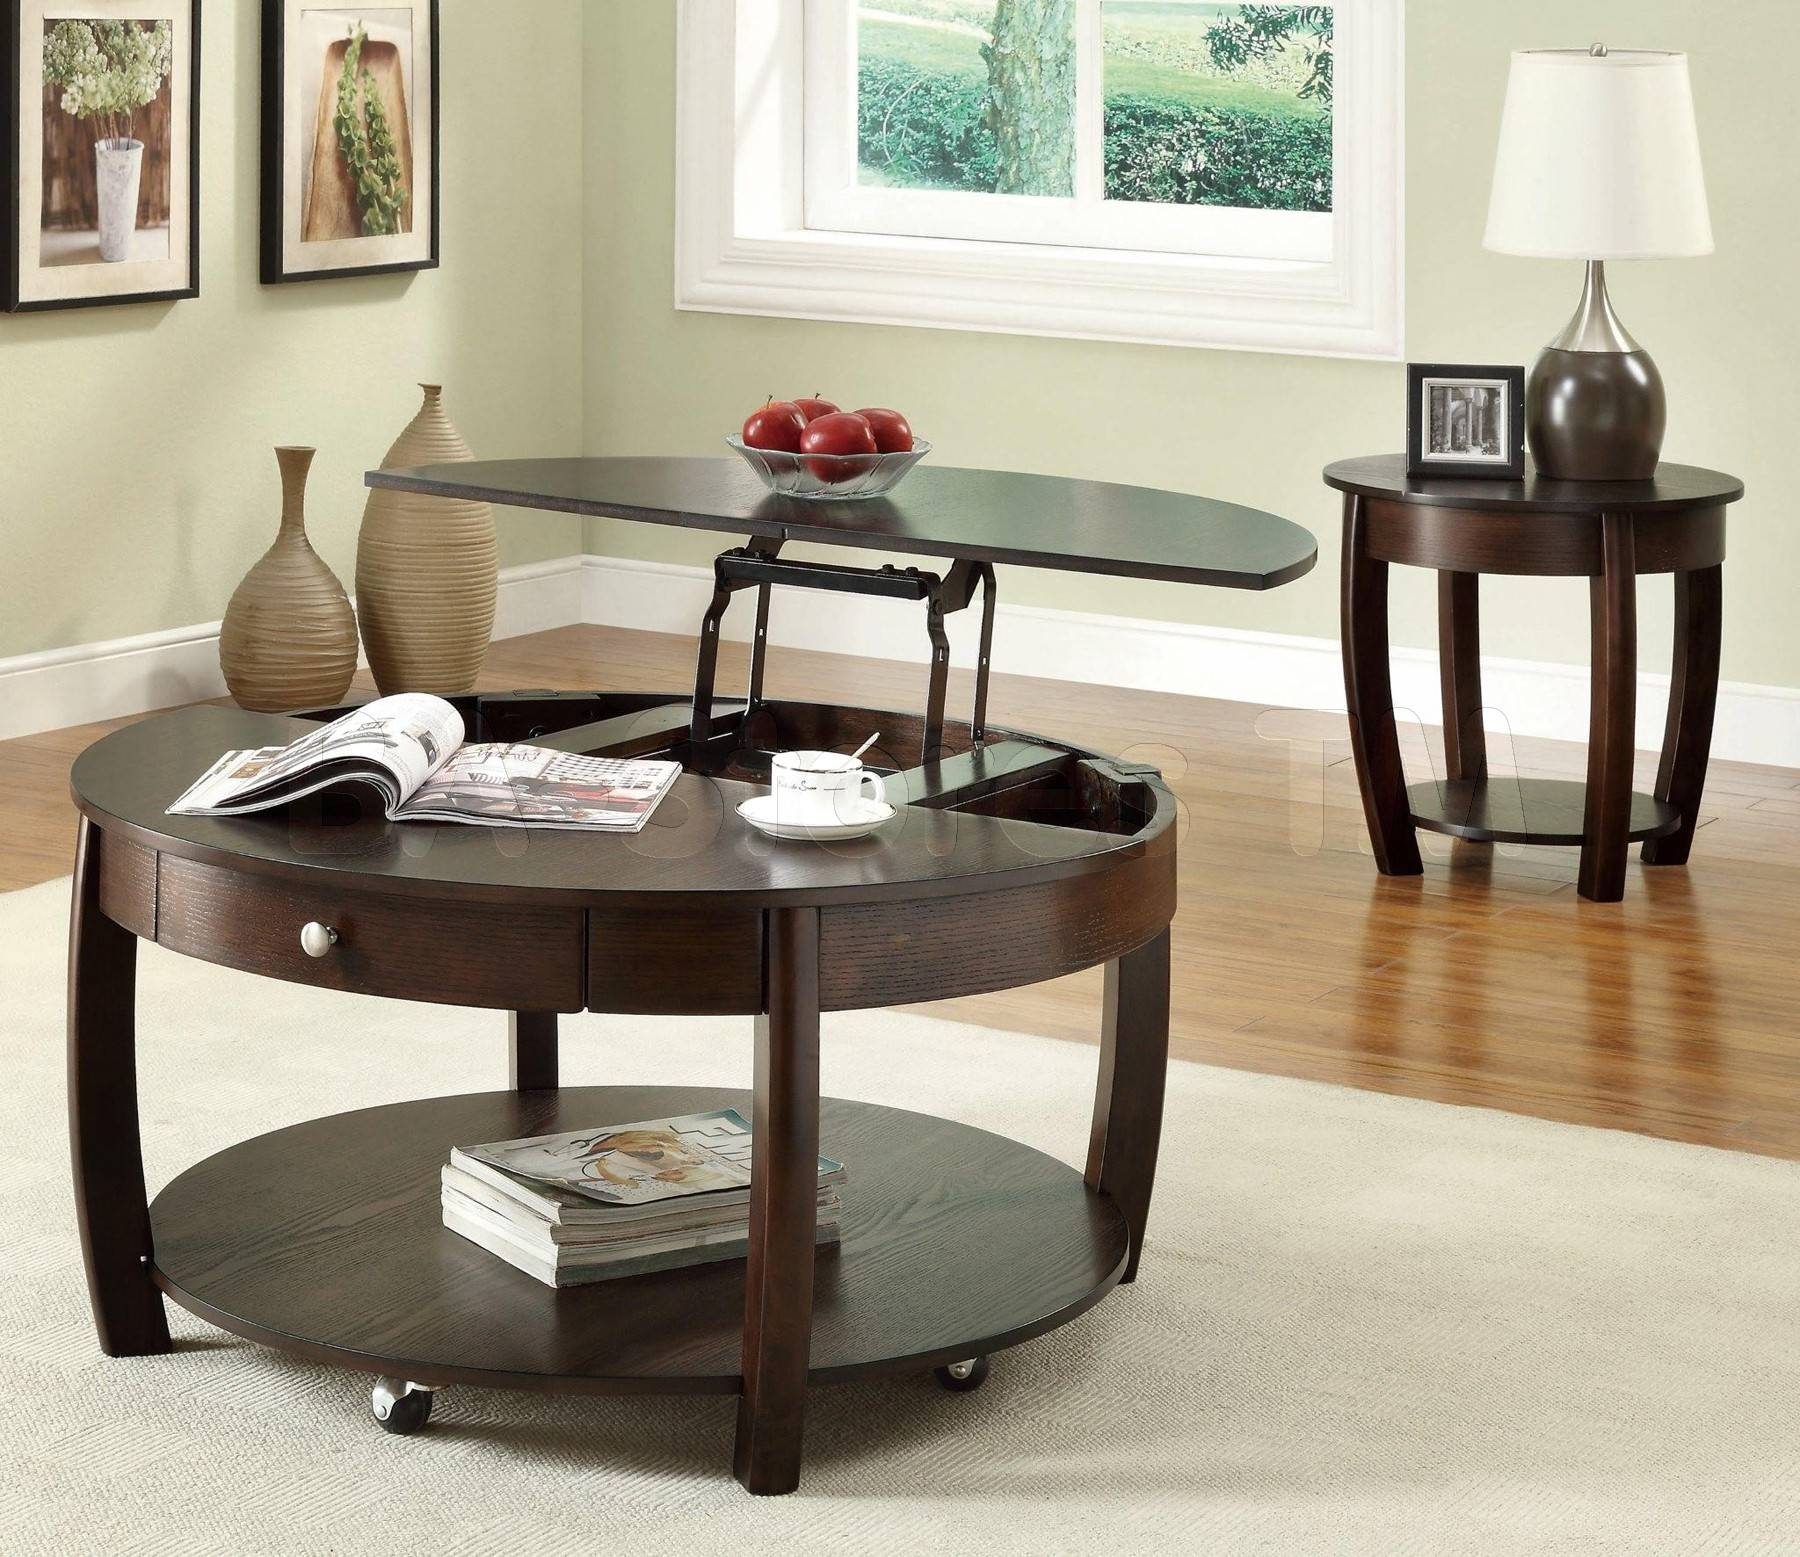 Black Wooden Round Table With Shelf Also Four Long Legs With regarding Round Coffee Tables With Drawer (Image 4 of 30)